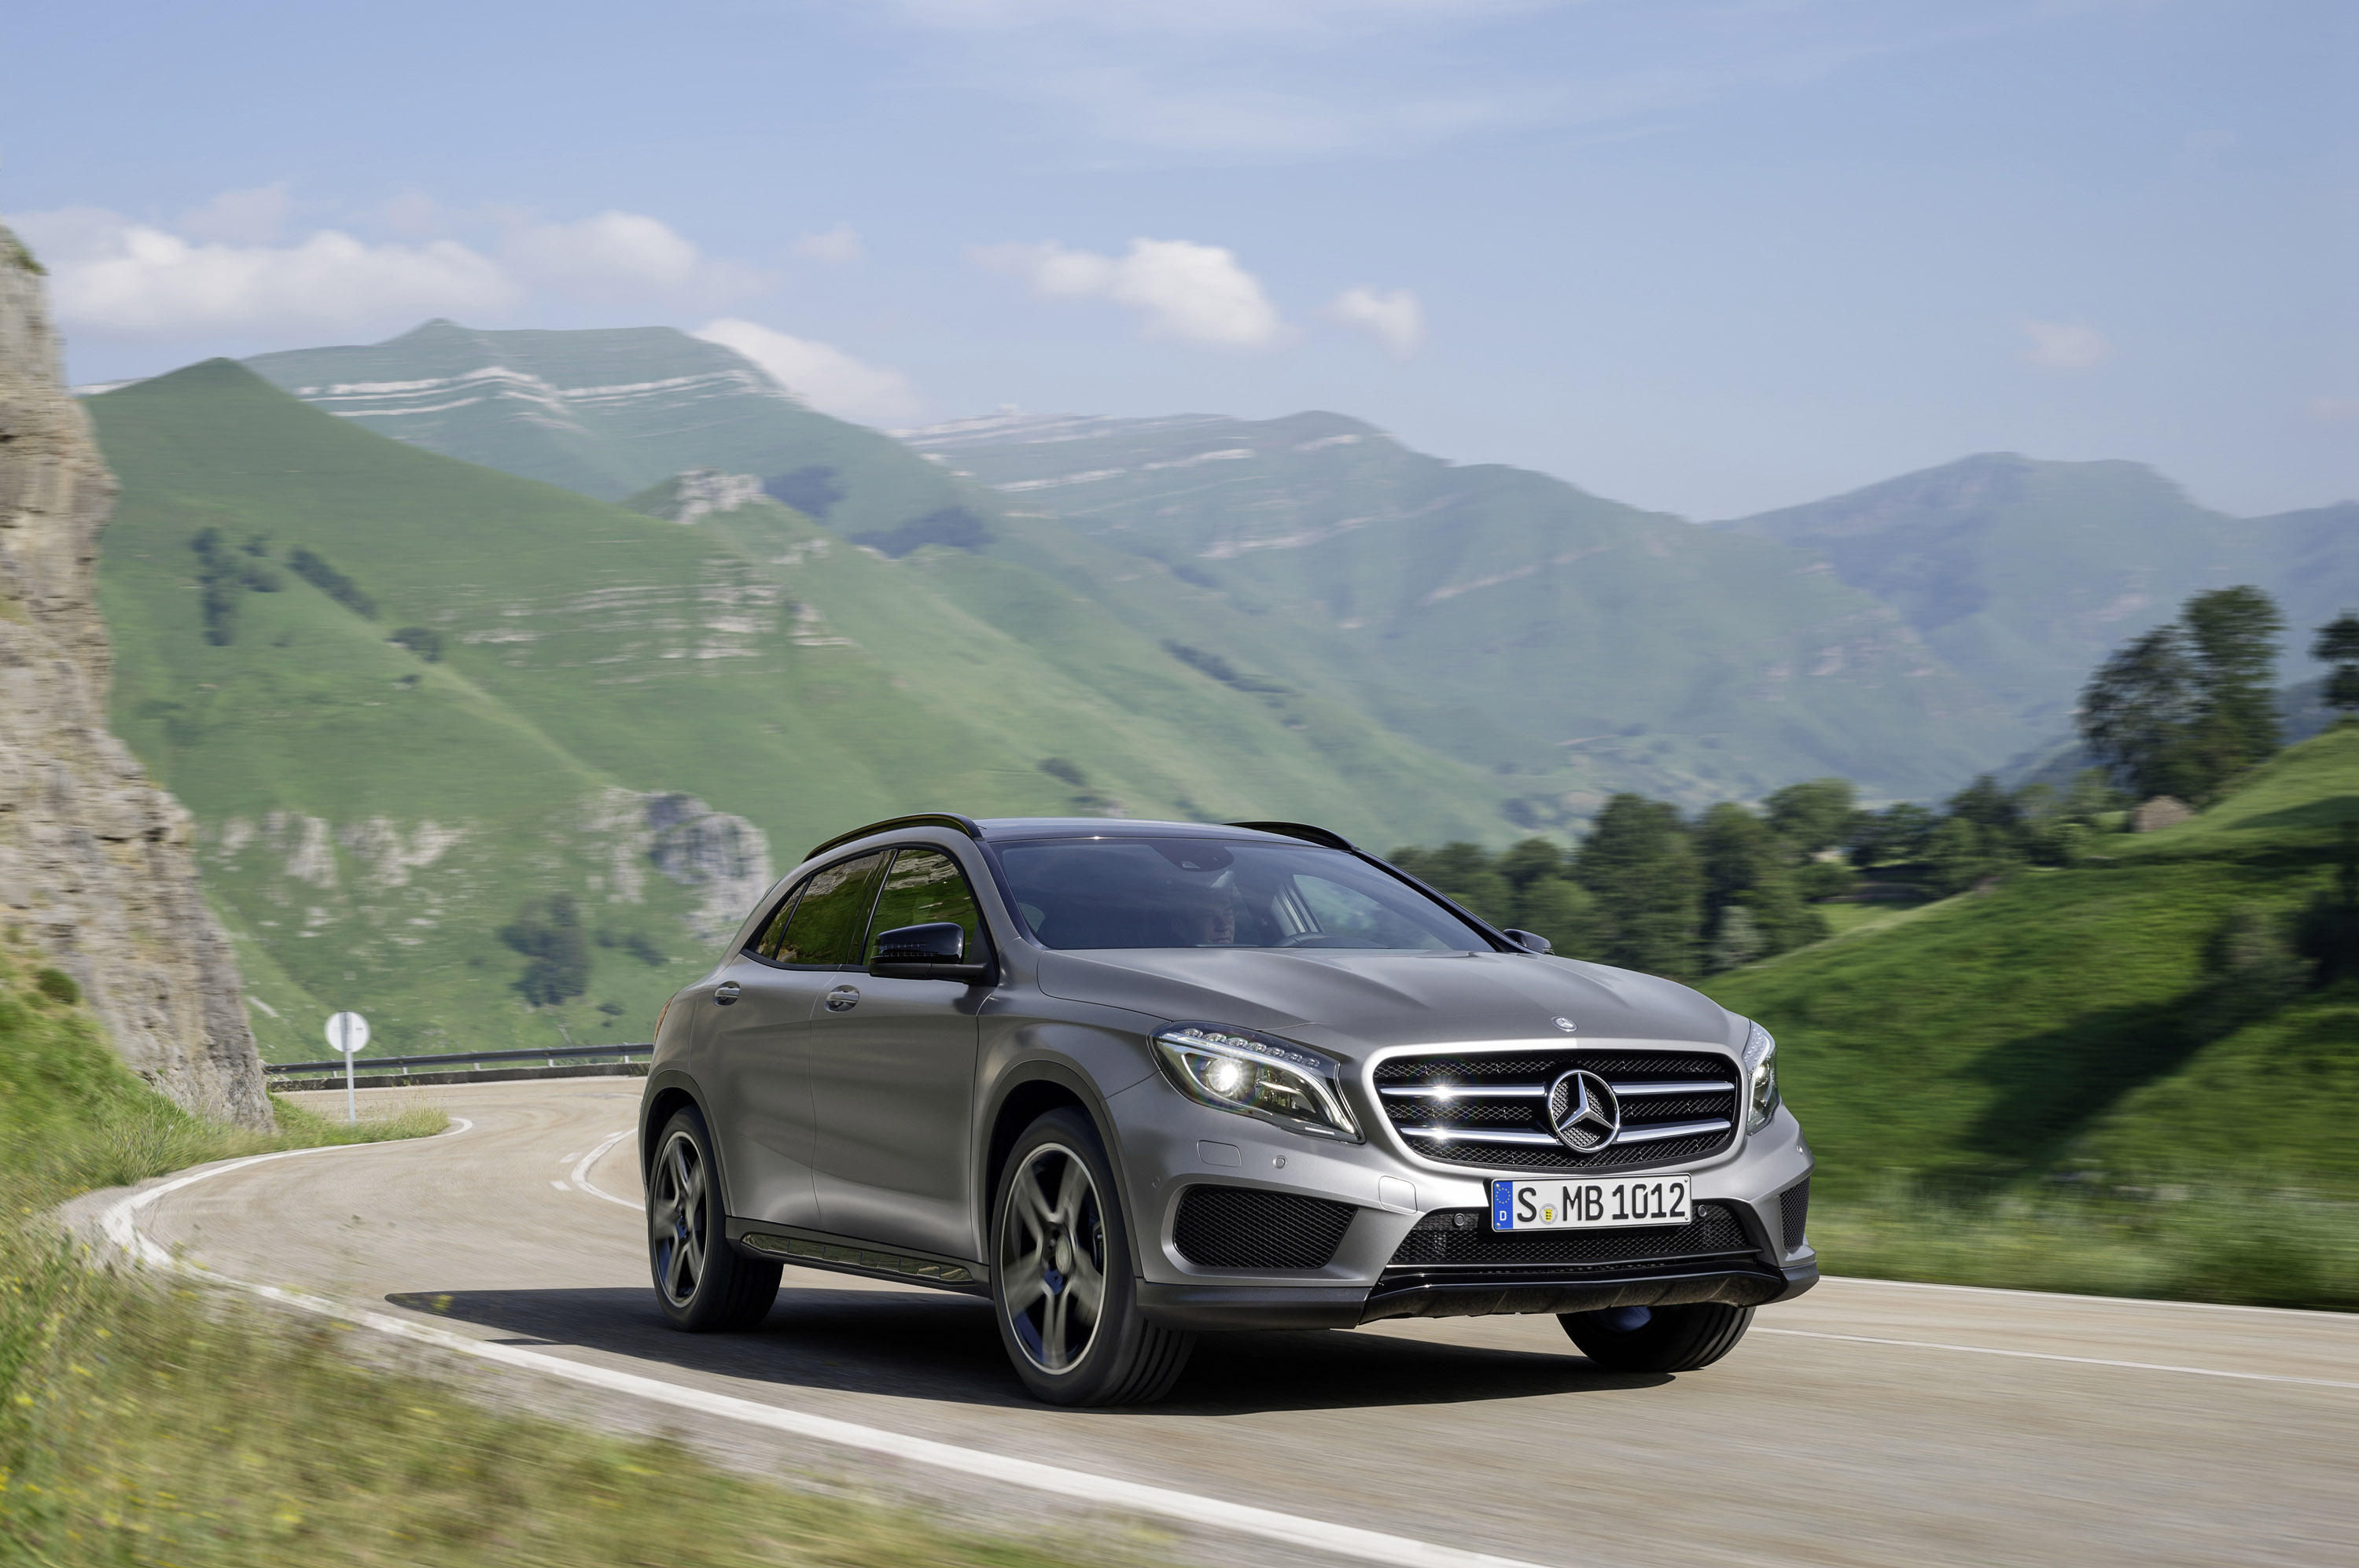 Mercedes-Benz GLA-Class photo #1